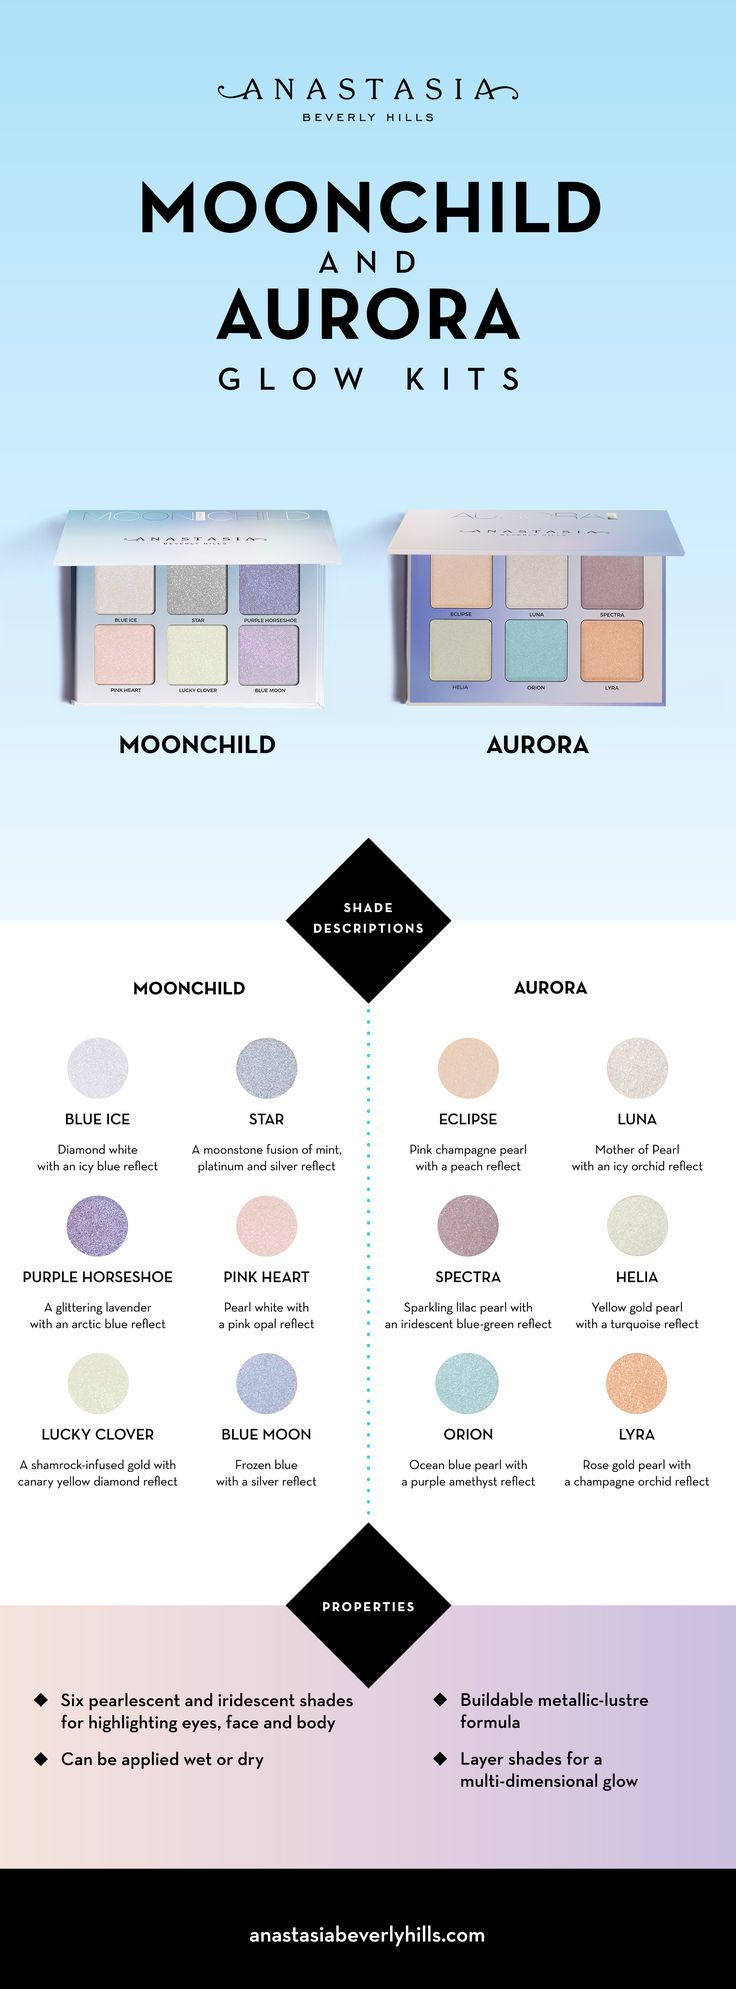 Aurora Glow Kit Vs. Moonchild Glow Kit Comparison